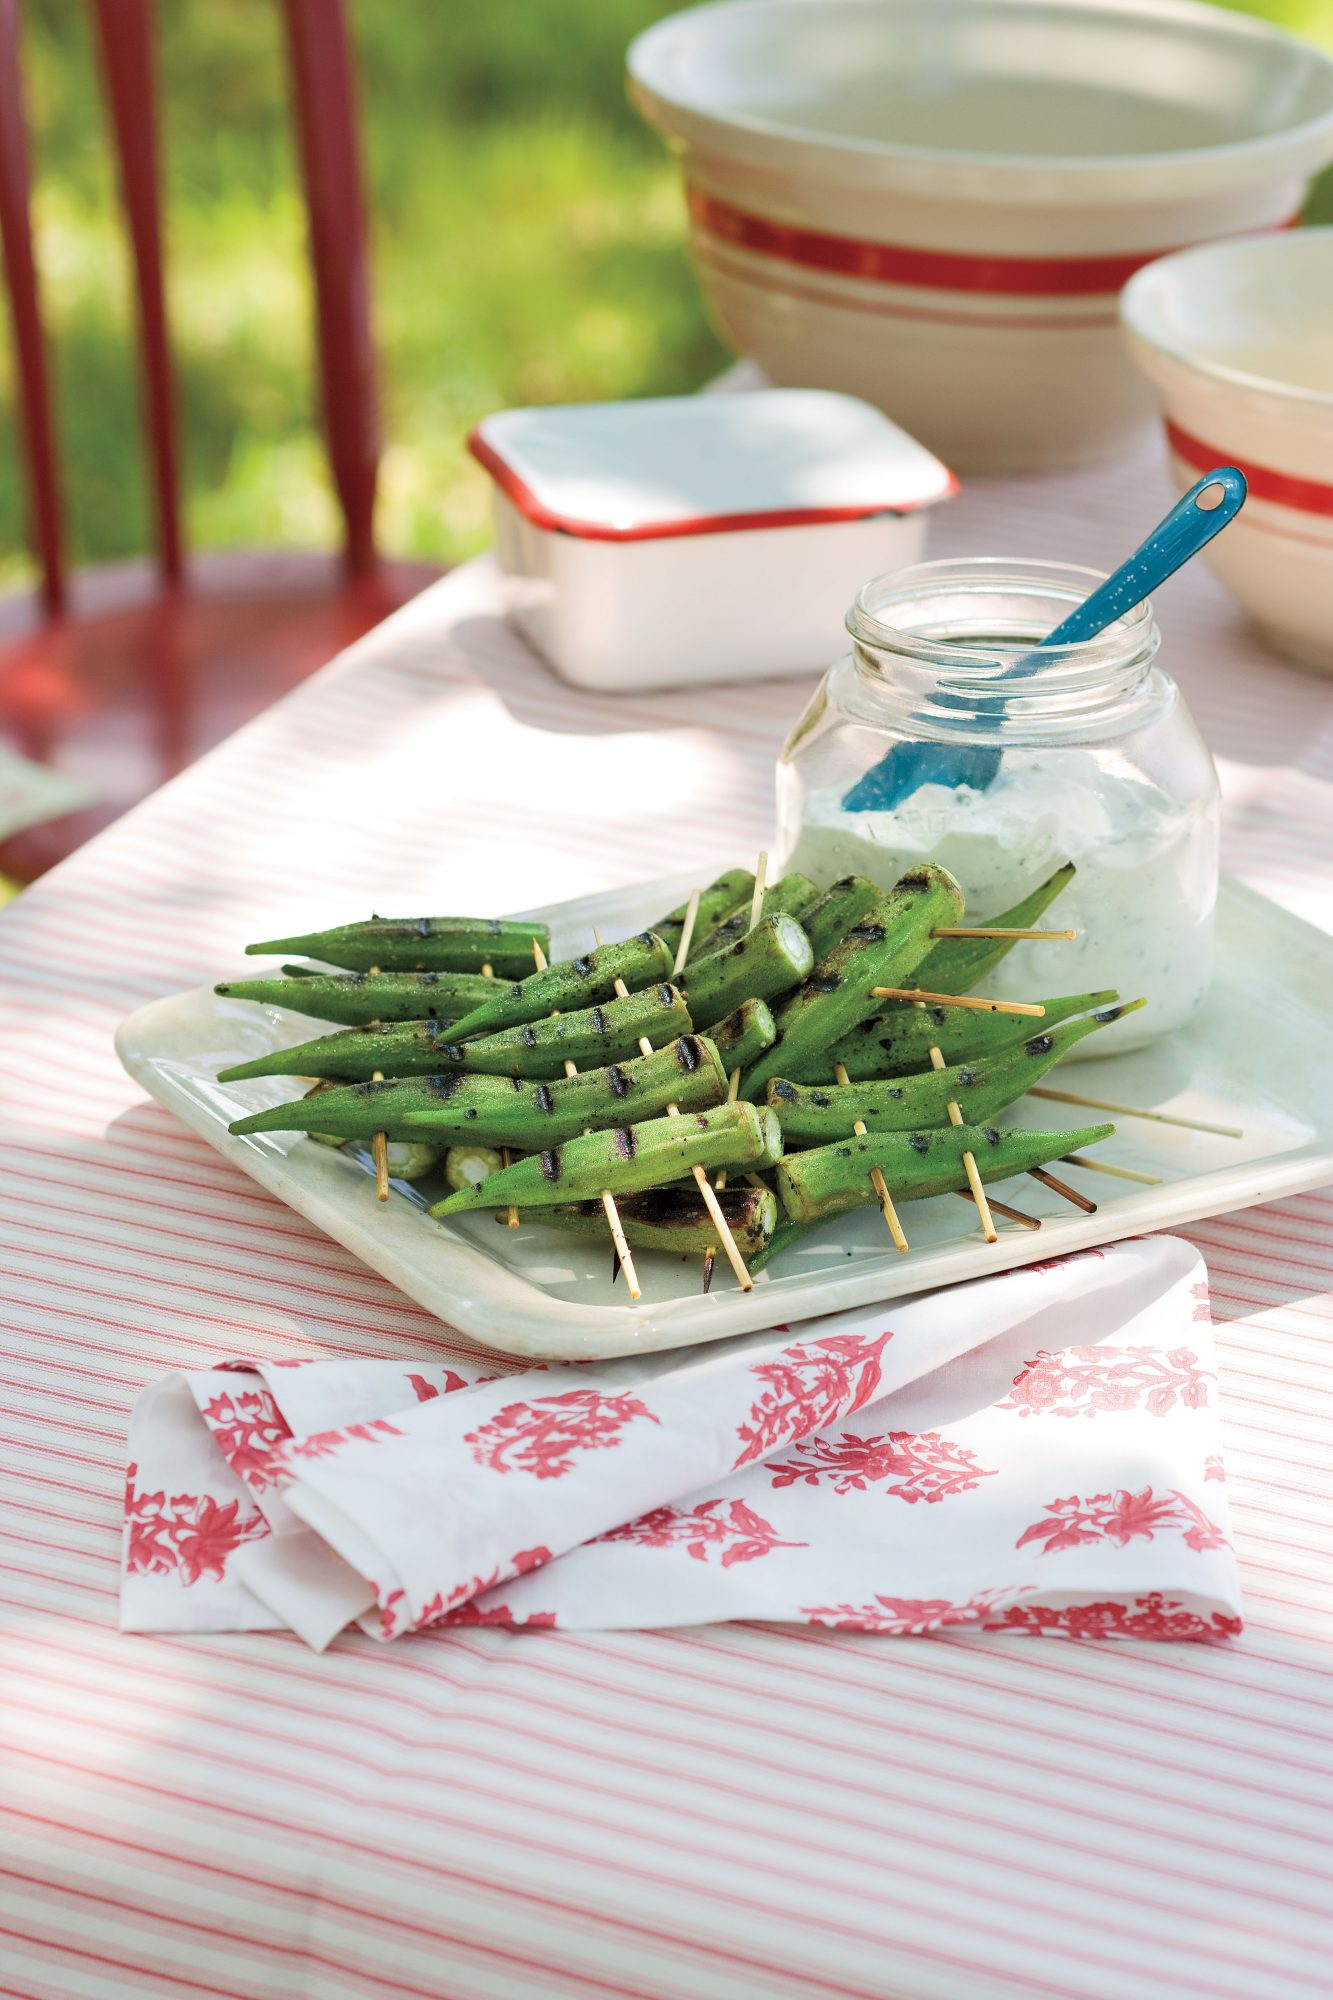 Vegetarian Grilling Recipes: Peppery Grilled Okra with Lemon-Basil Dipping Sauce